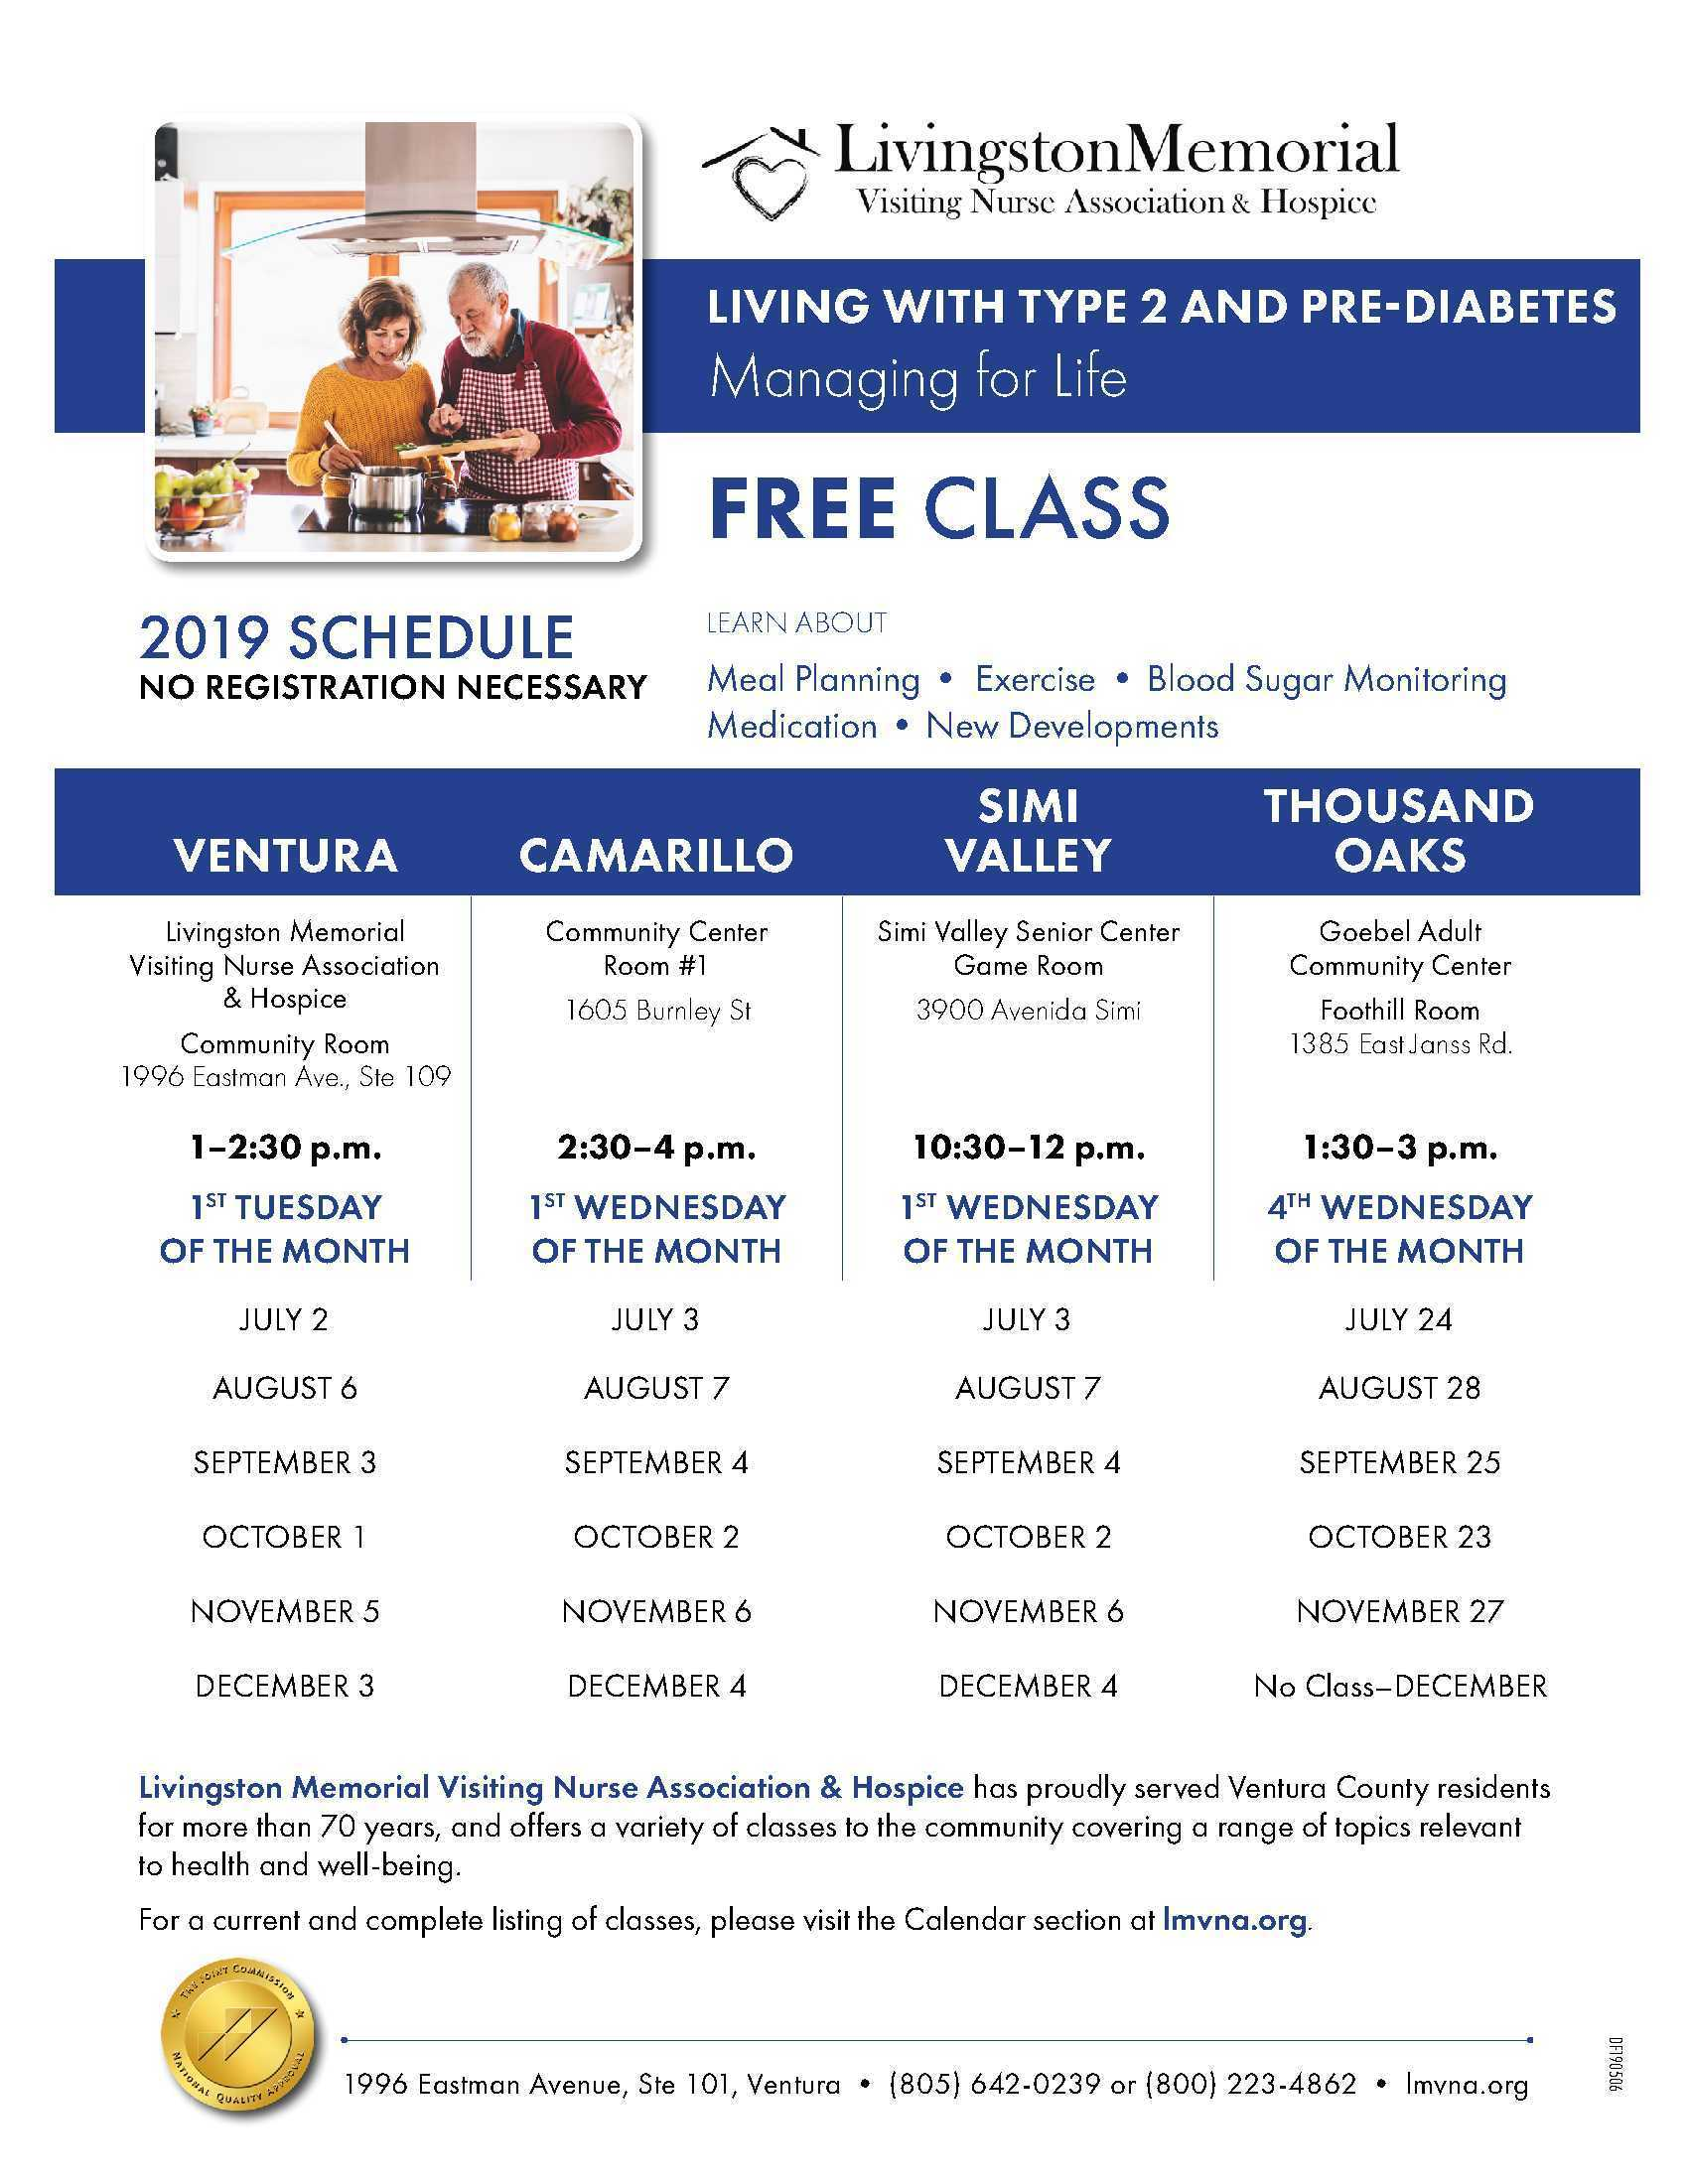 2019 Schedule Living With Type 2 and Pre-Diabetes